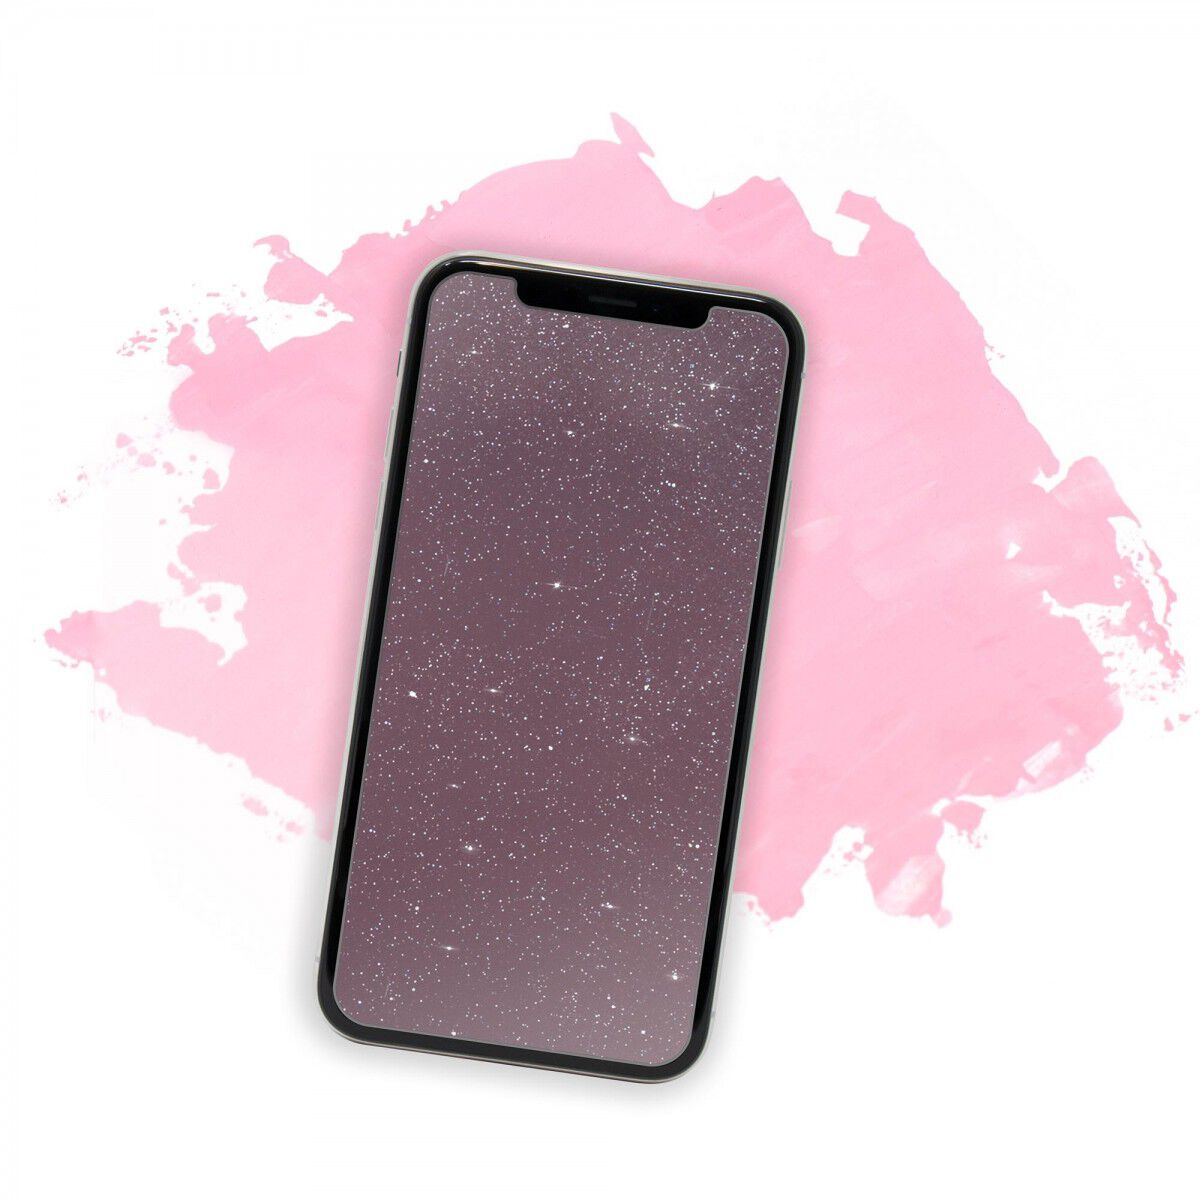 Large glitter glass screen protector for iPhone 11 Pro Max and iPhone Xs Max